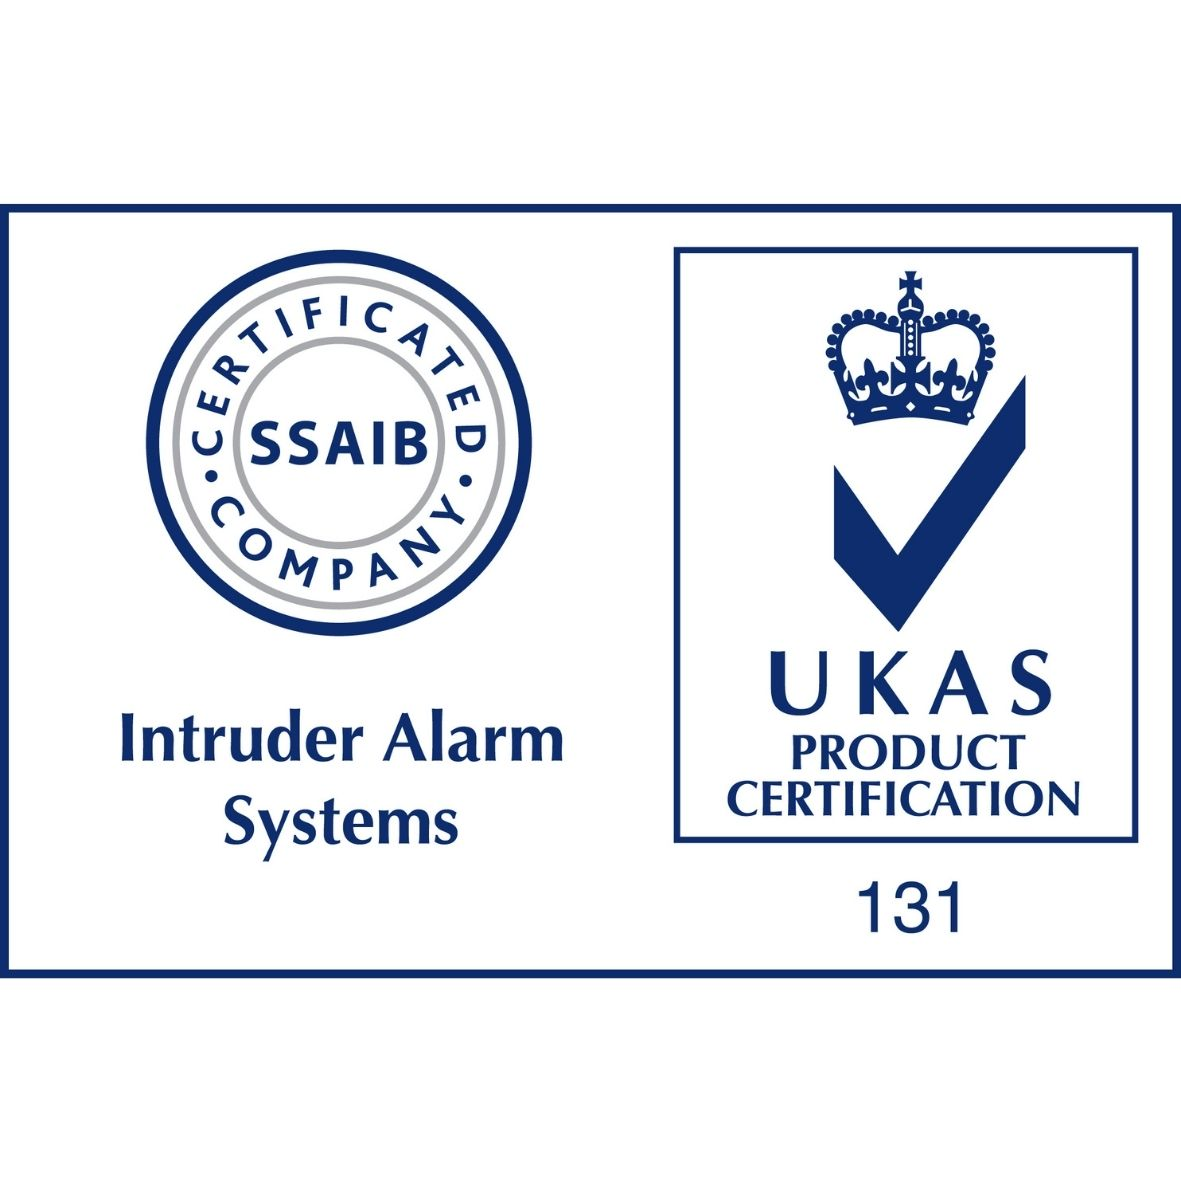 SSAIB Intruder Alarm with UKAS Accreditation Logo